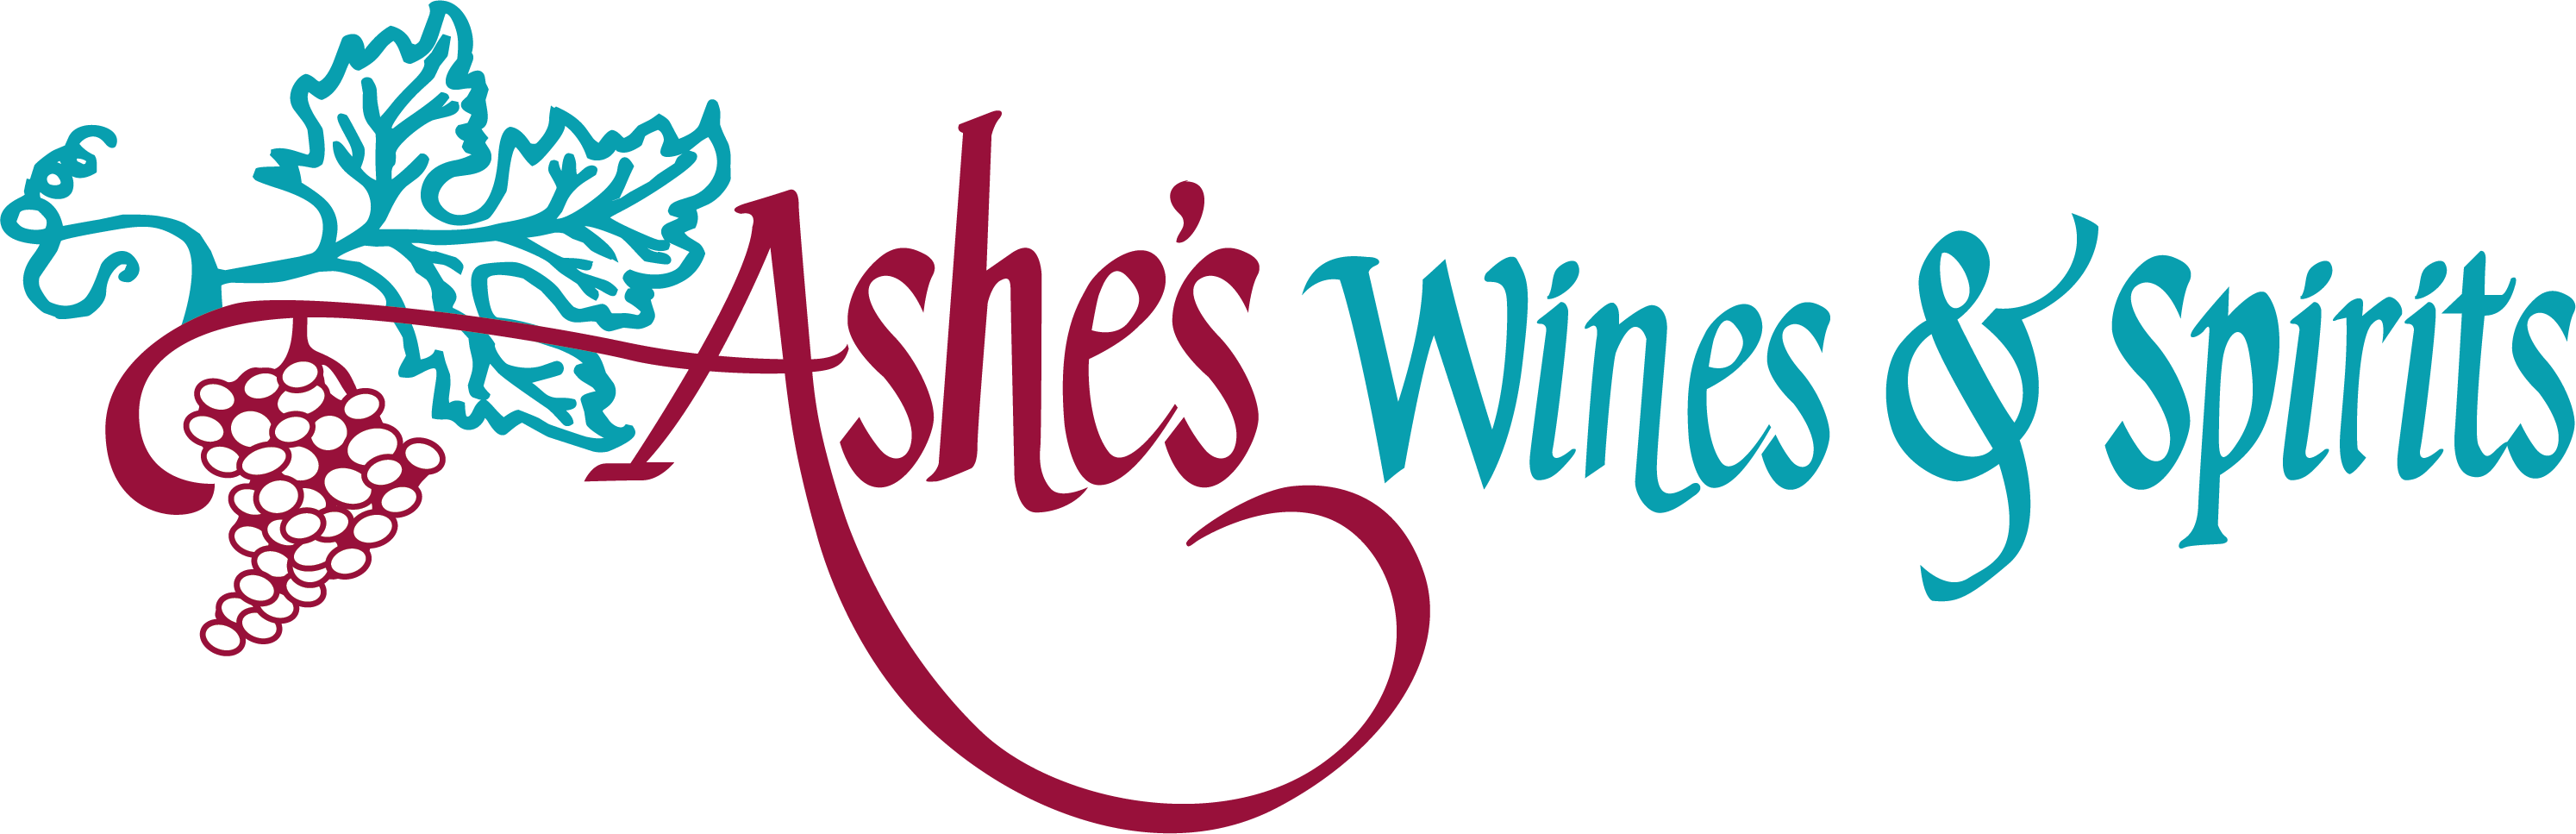 Ashes Wines & Spirits - Wine Beer and Spirits Shop - Knoxville, TN